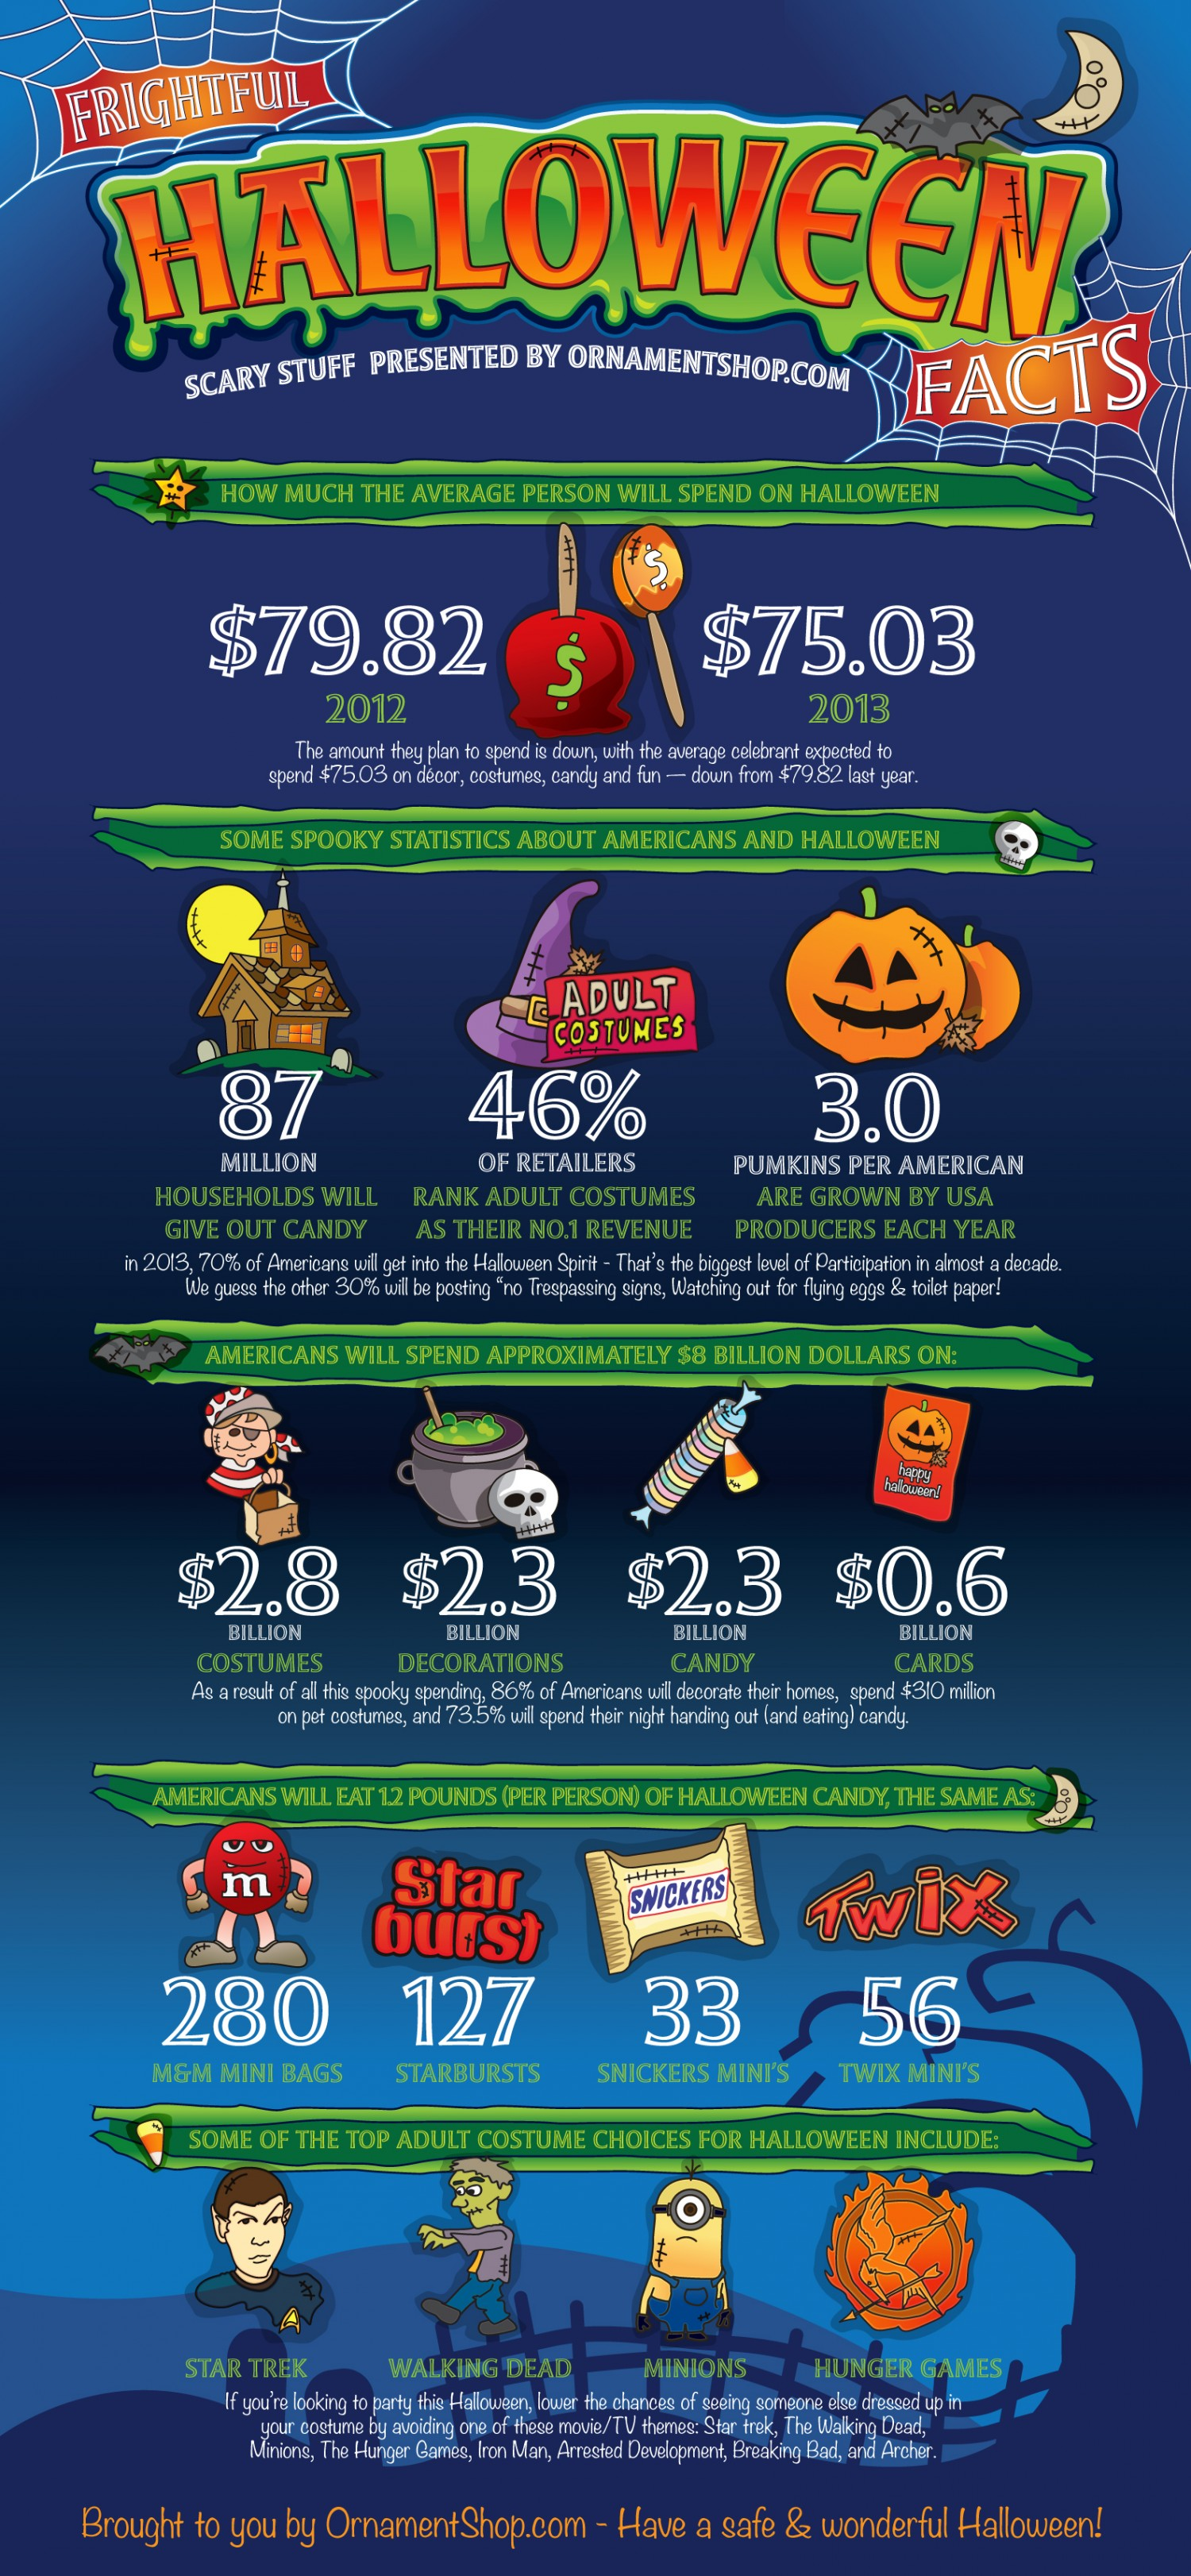 5-interesting-facts-you-didnt-know-about-halloween